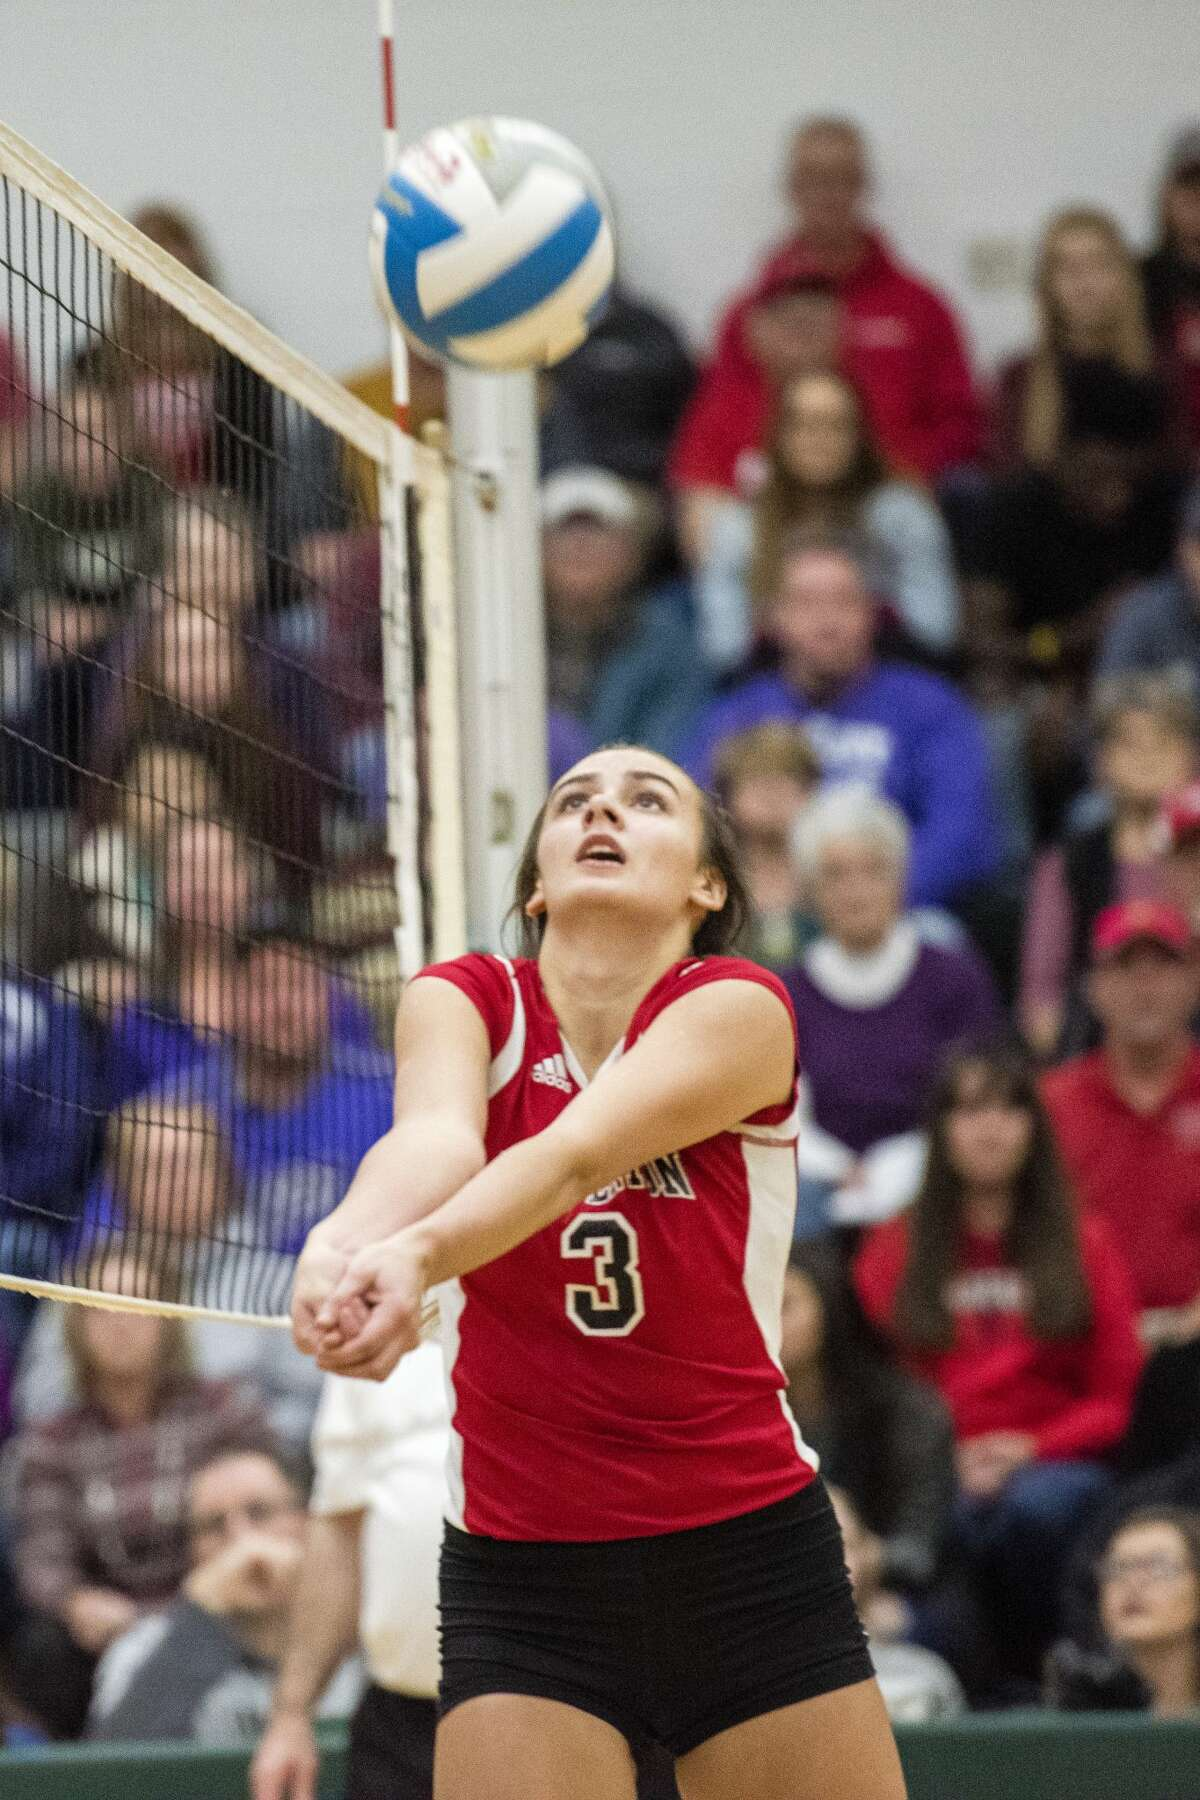 Beaverton senior Reiss Faber bumps the ball during the Class C regional finals against the Shelby Tigers on Thursday, Nov. 9, 2017 at Pinconning High School. The Tigers won the match in three sets. (Danielle McGrew Tenbusch/for the Daily News)